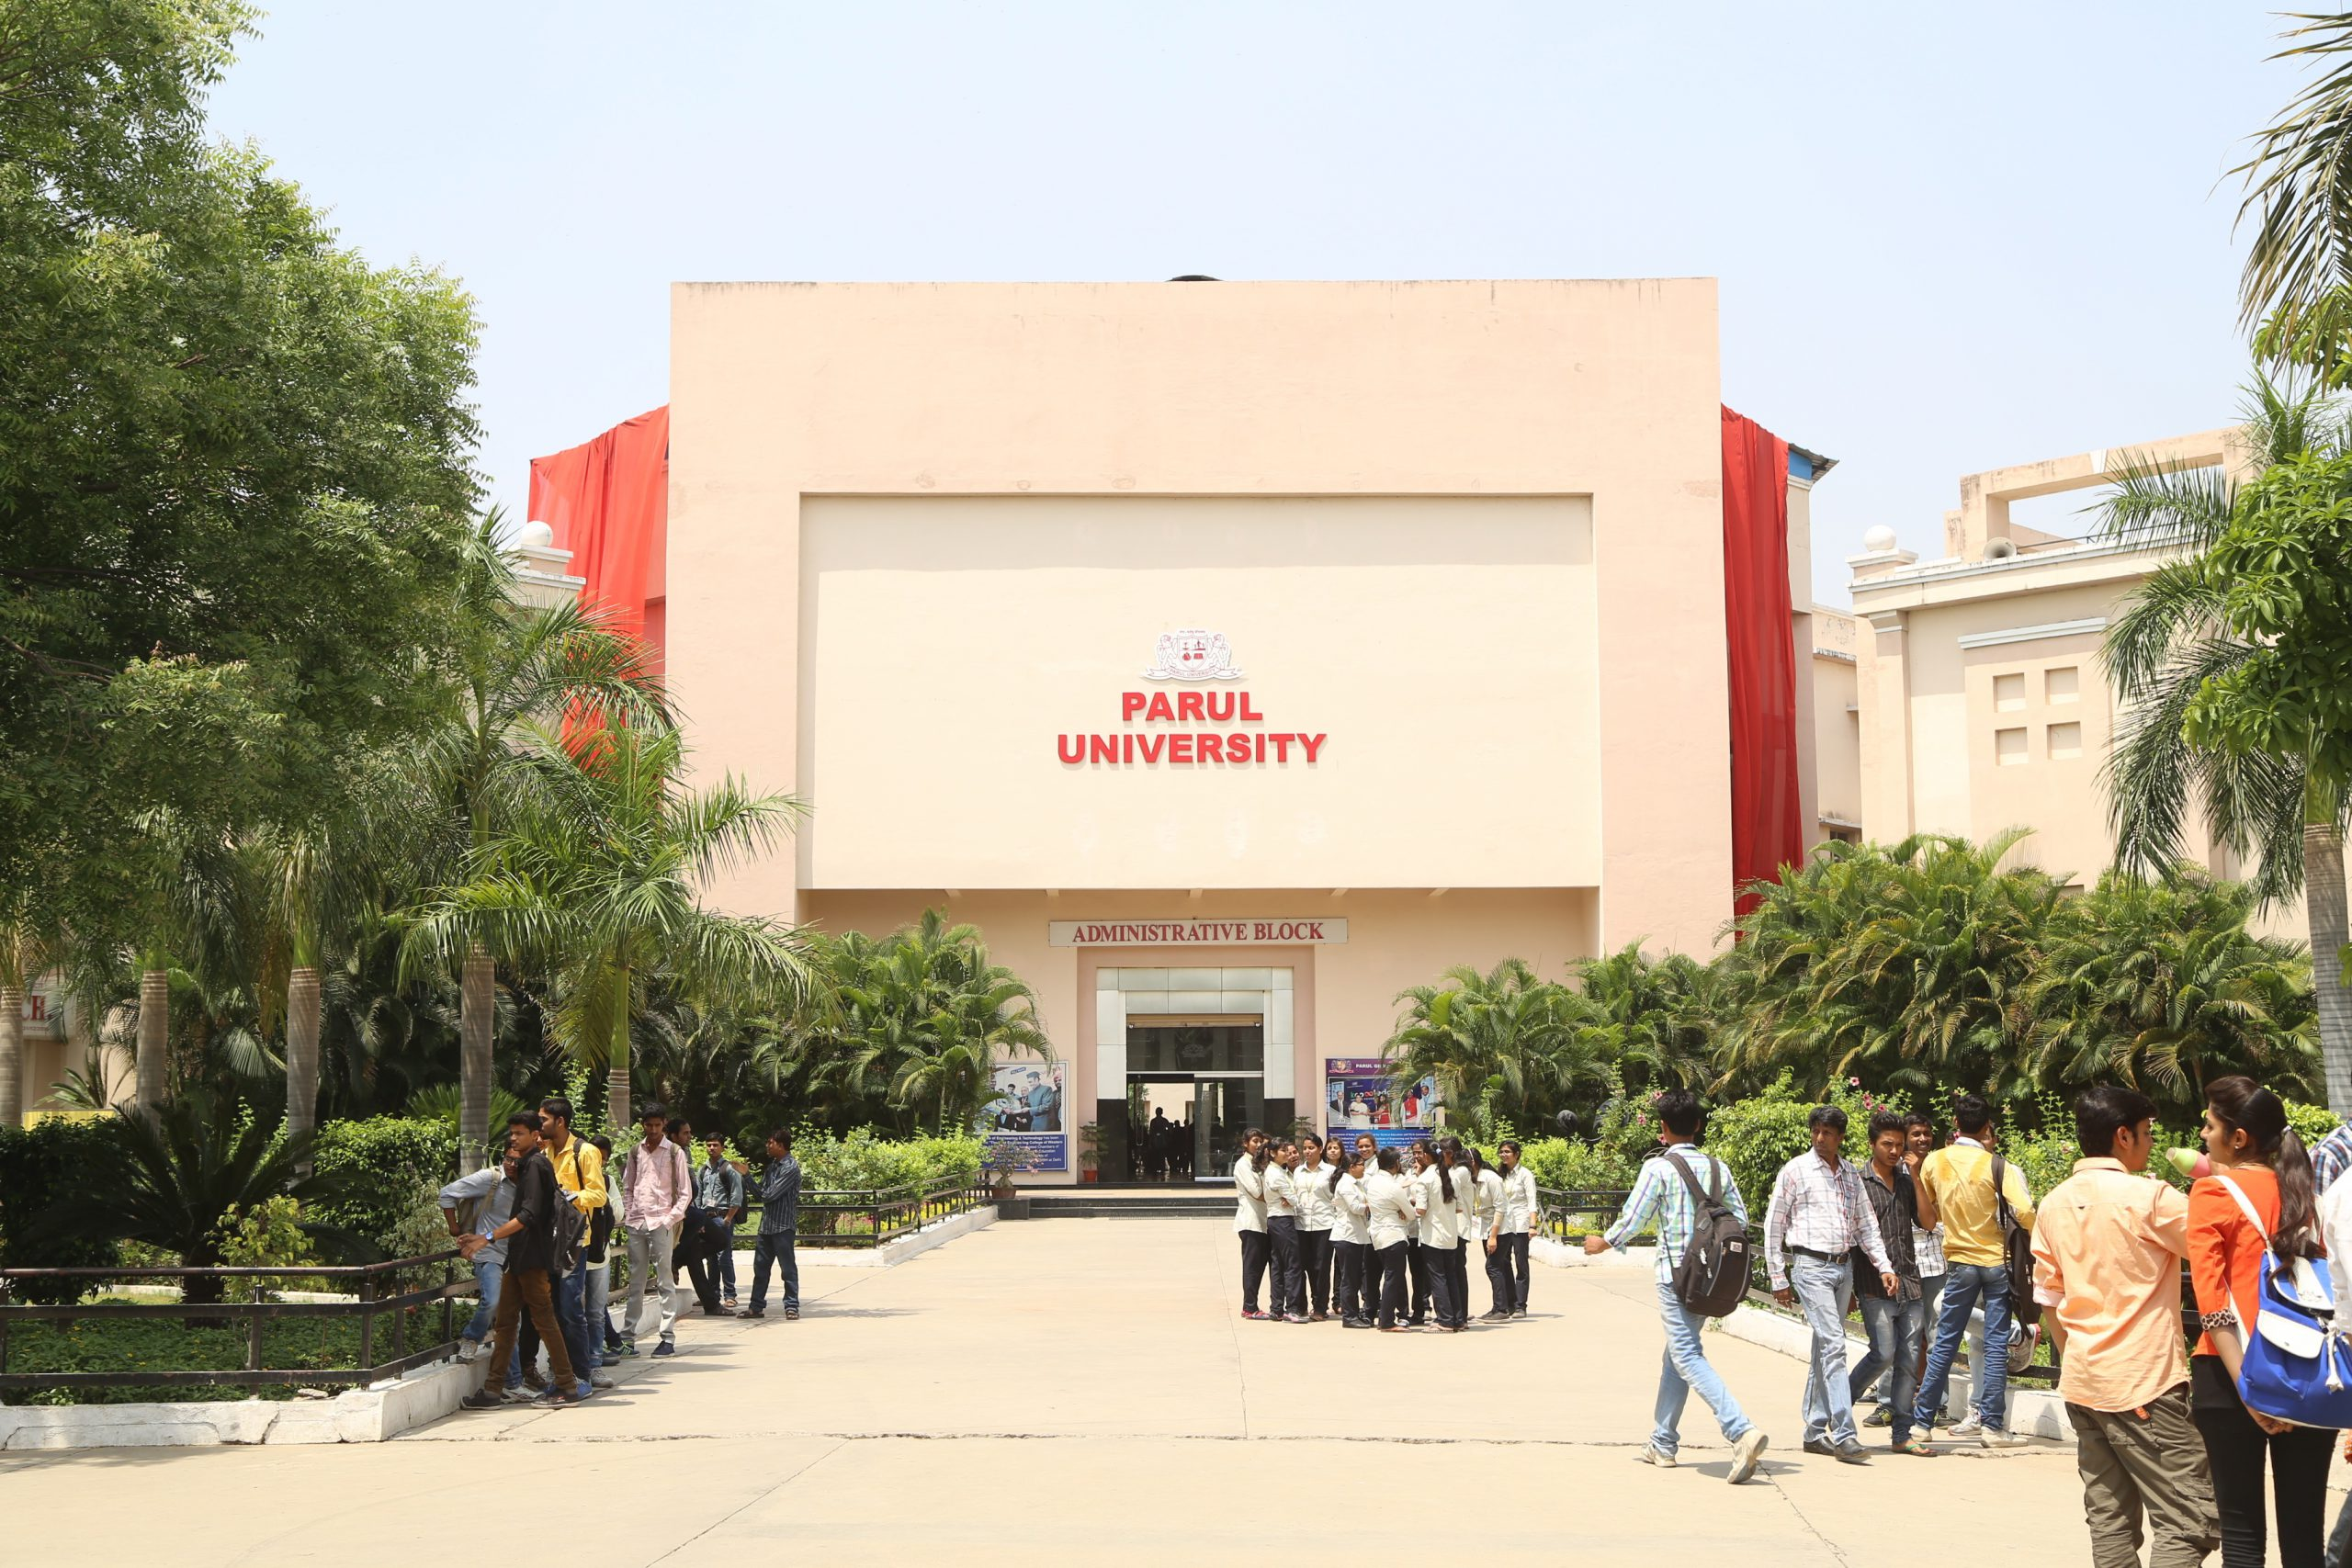 Parul University's Women Start-Up Meet at Parul university paves way for young women innovators